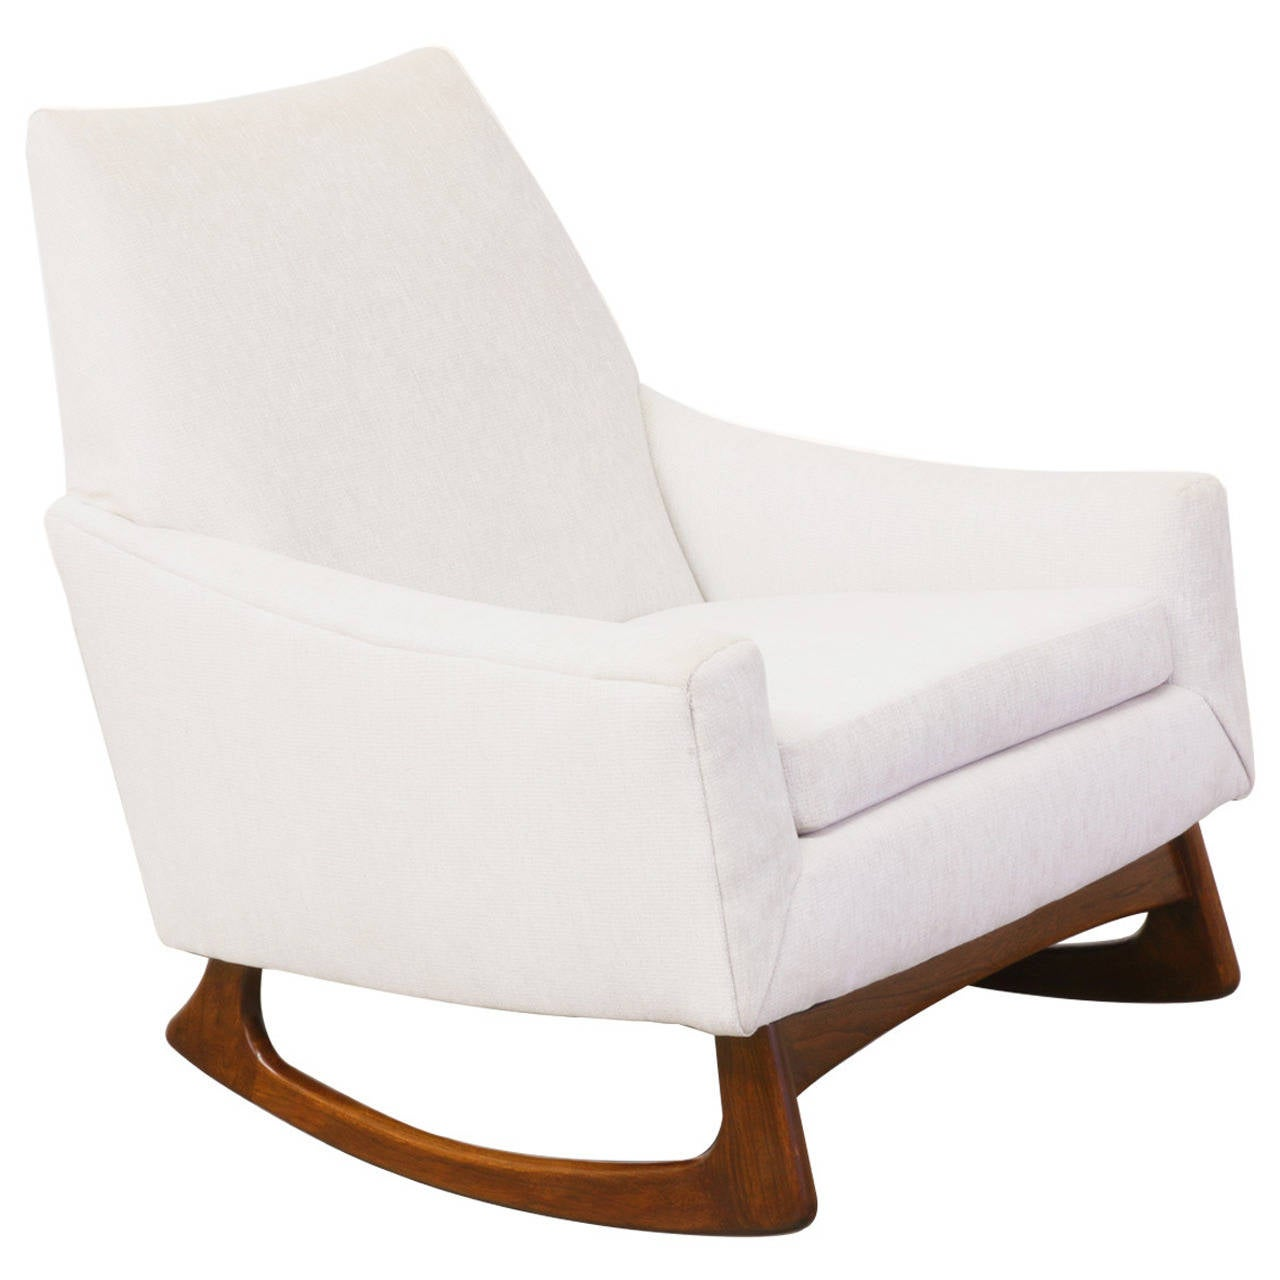 adrian pearsall rocking chair burlap wingback for craft associates at 1stdibs